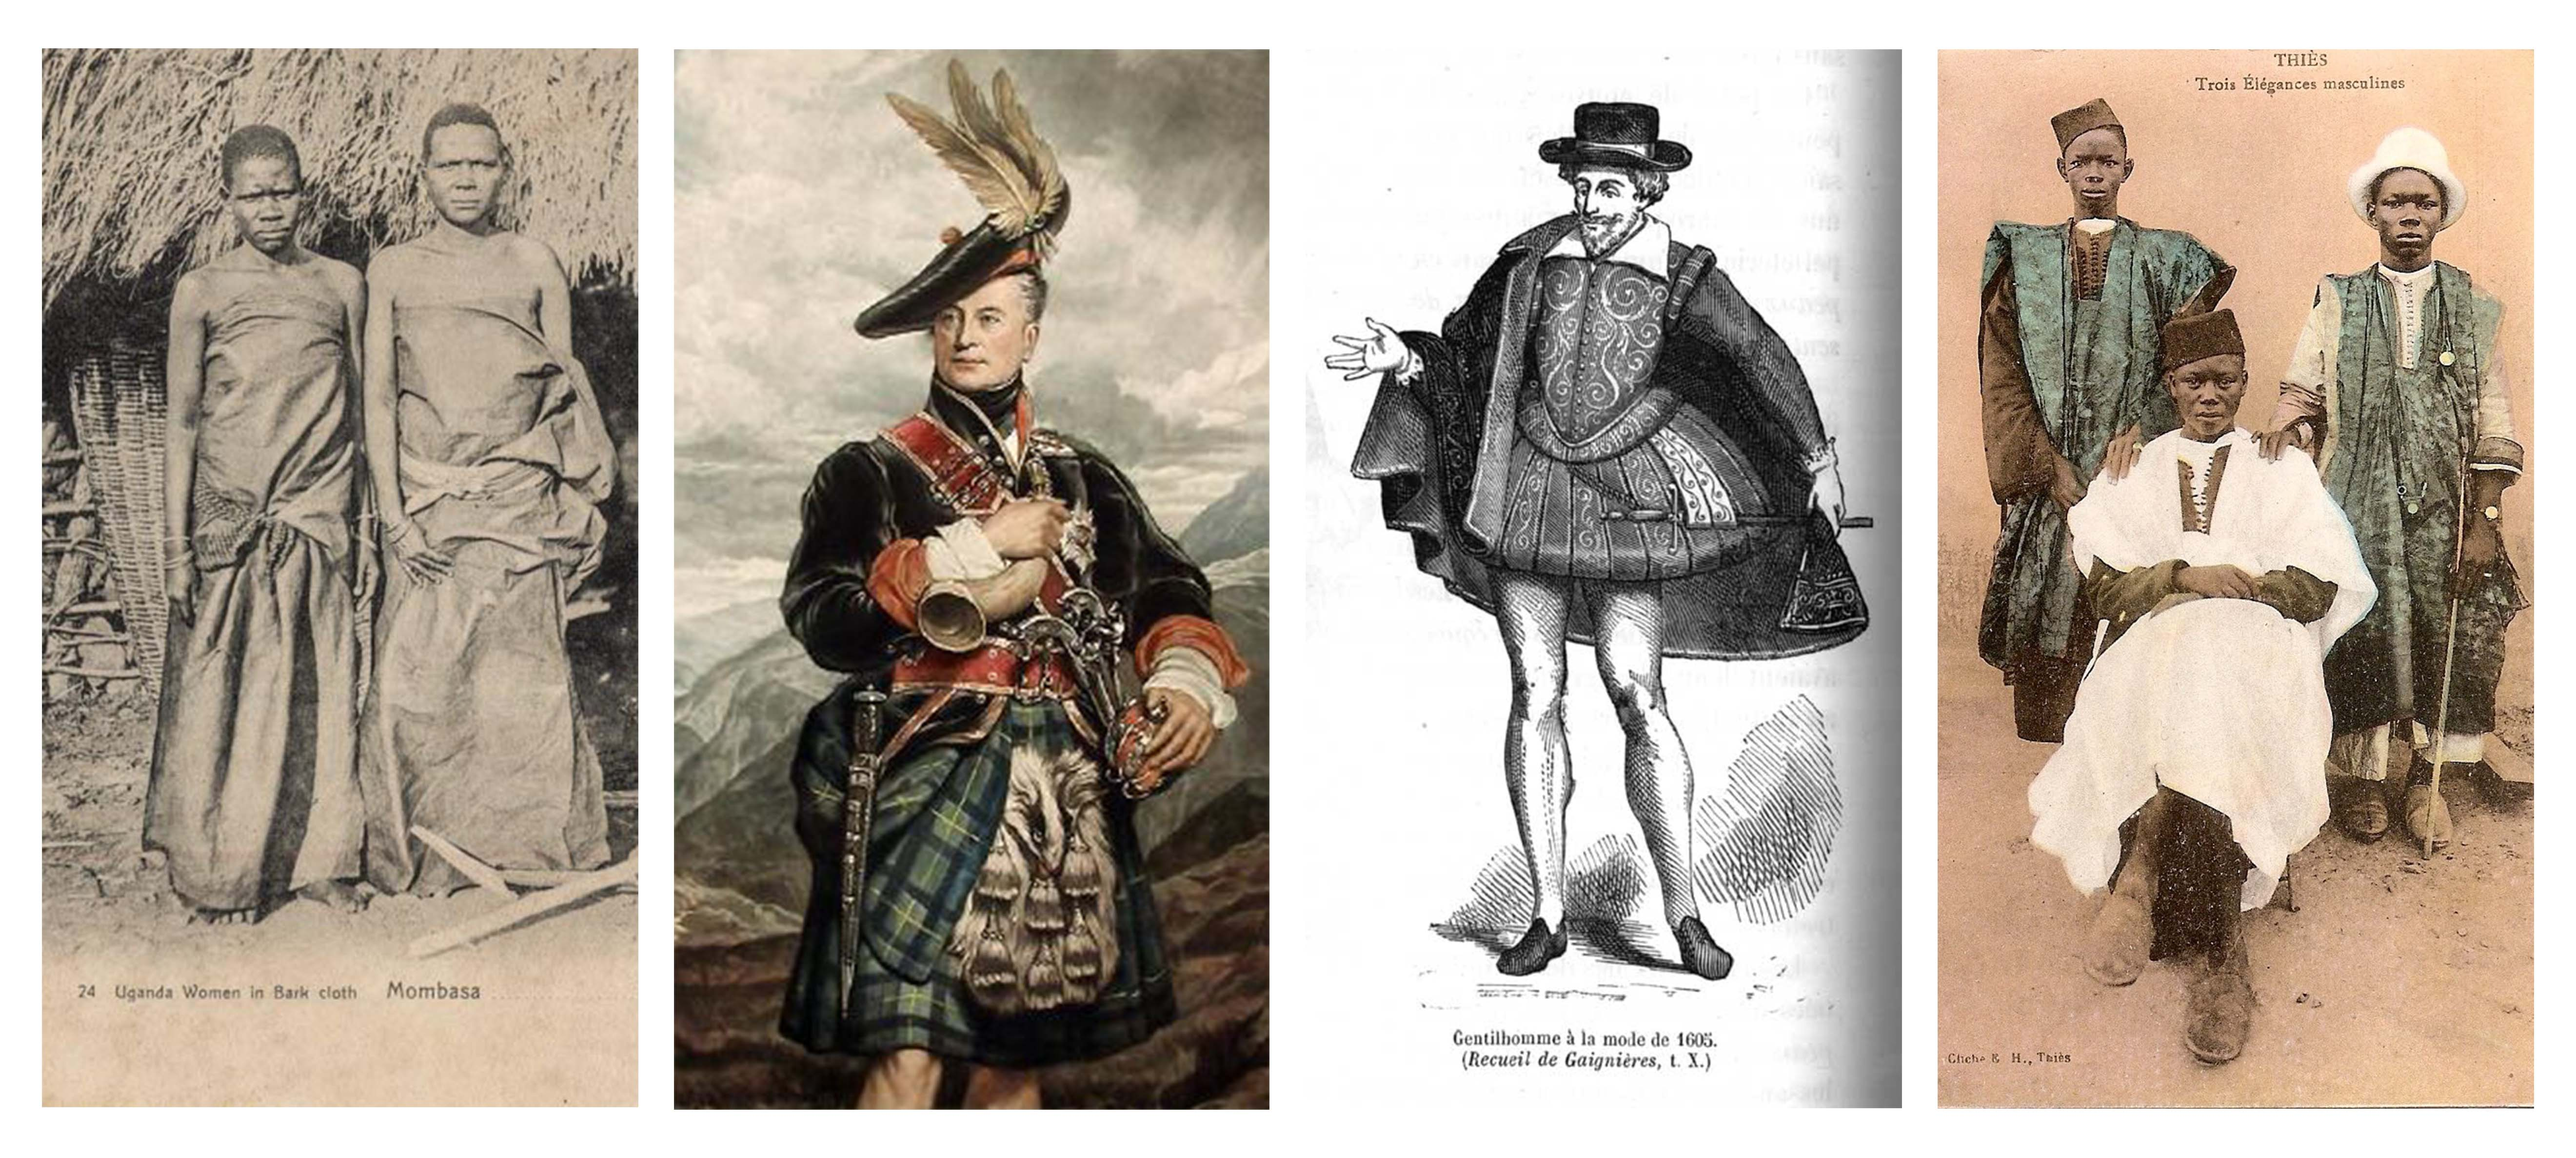 Men in skirts and dresses: The history of unisex clothing